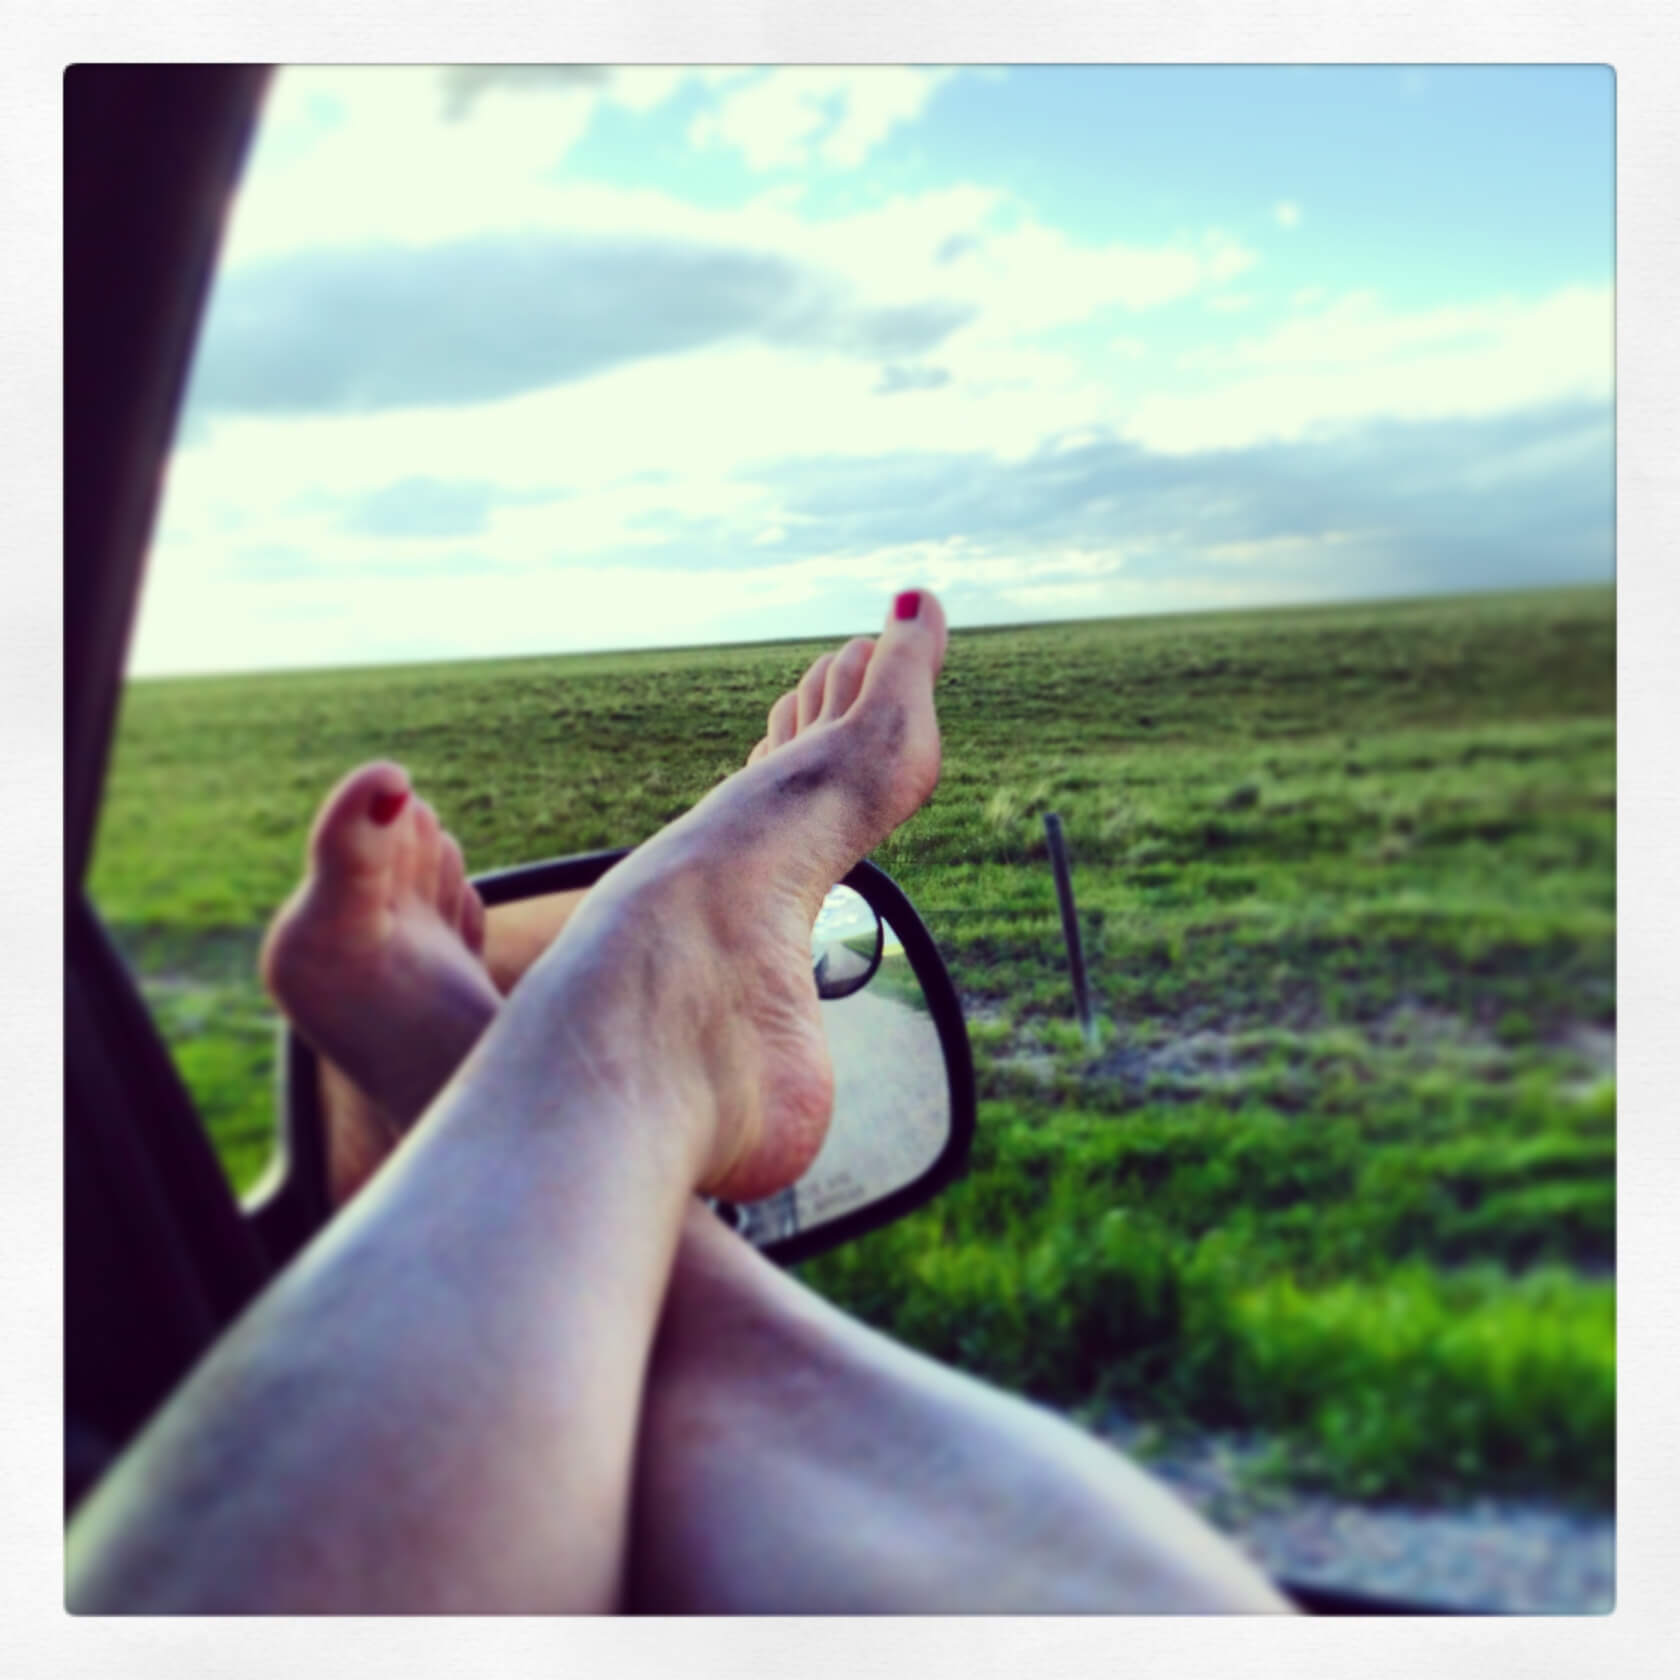 Driving through the country with my feet out the window. Heaven!